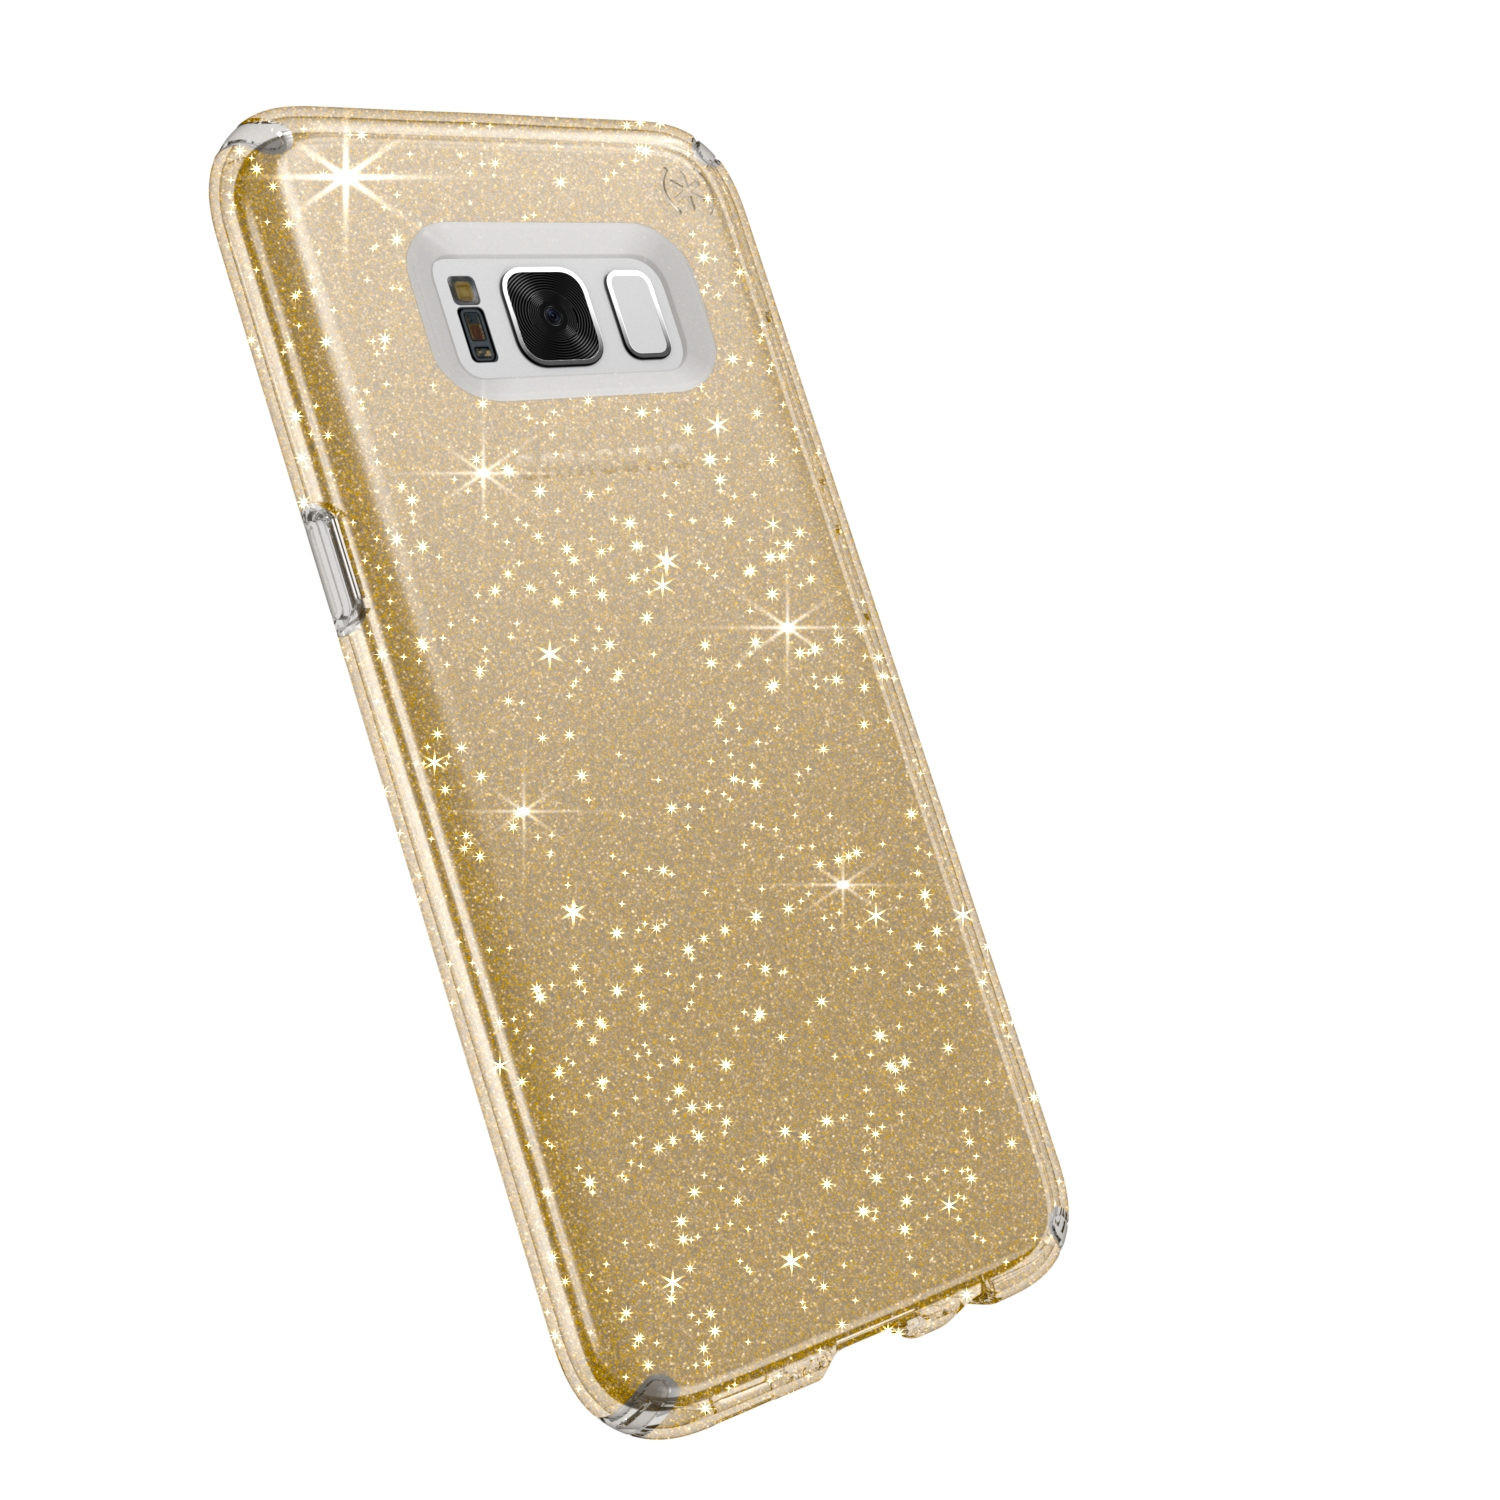 Search and compare best prices of Speck Presidio Clear with Glitter Samsung Galaxy S8 Plus Cases Clear/Gold Glitter in UK